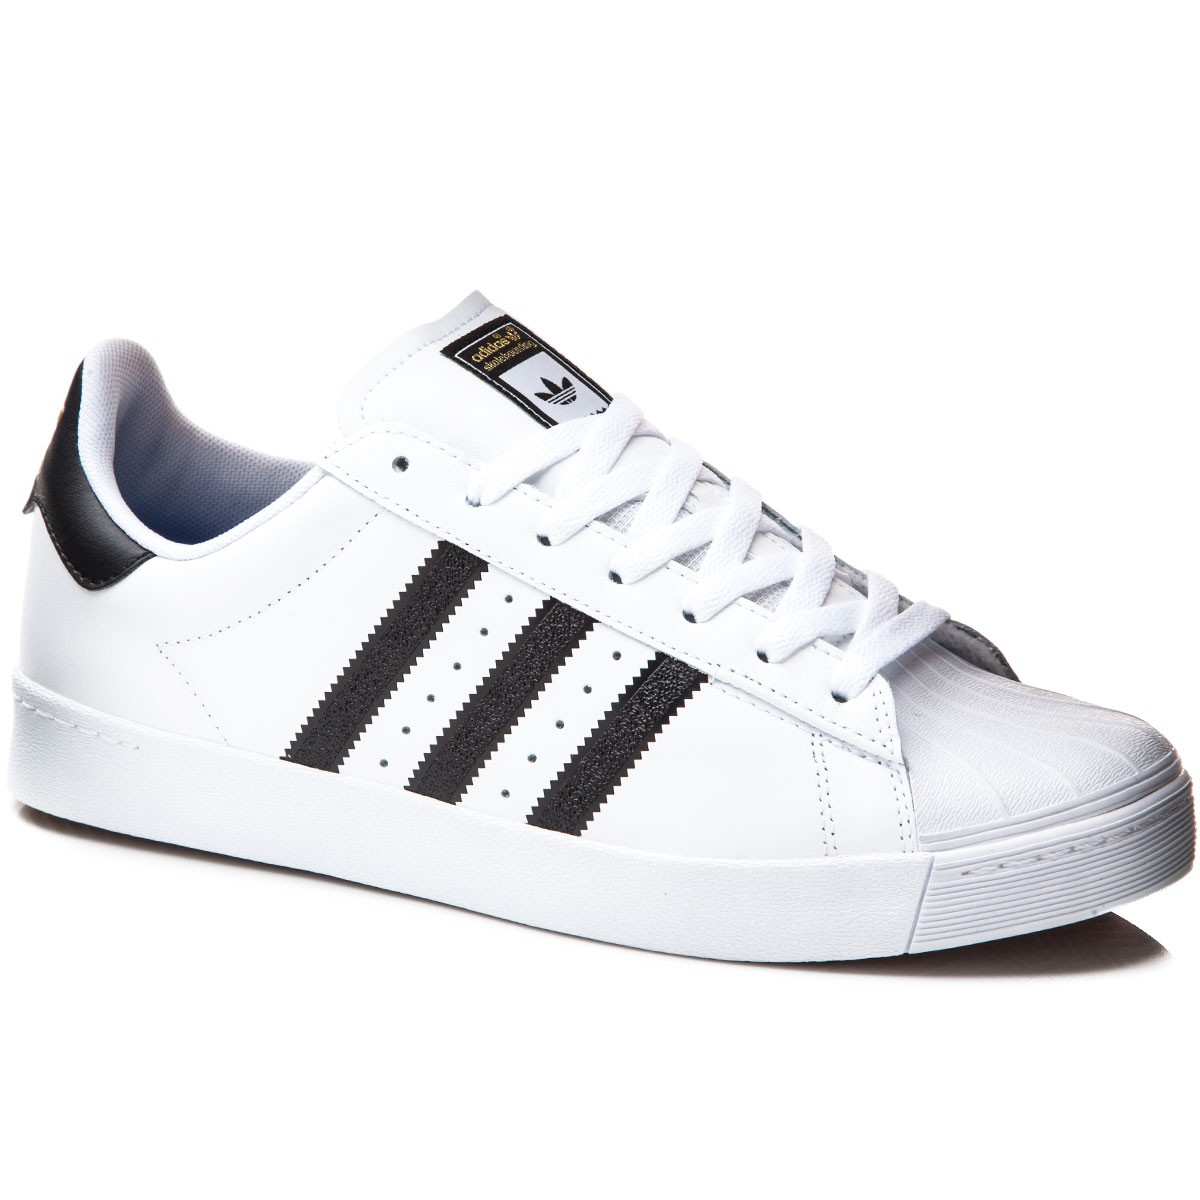 adidas Superstar 3G Slide Men's Casual Shoes Black/Metallic